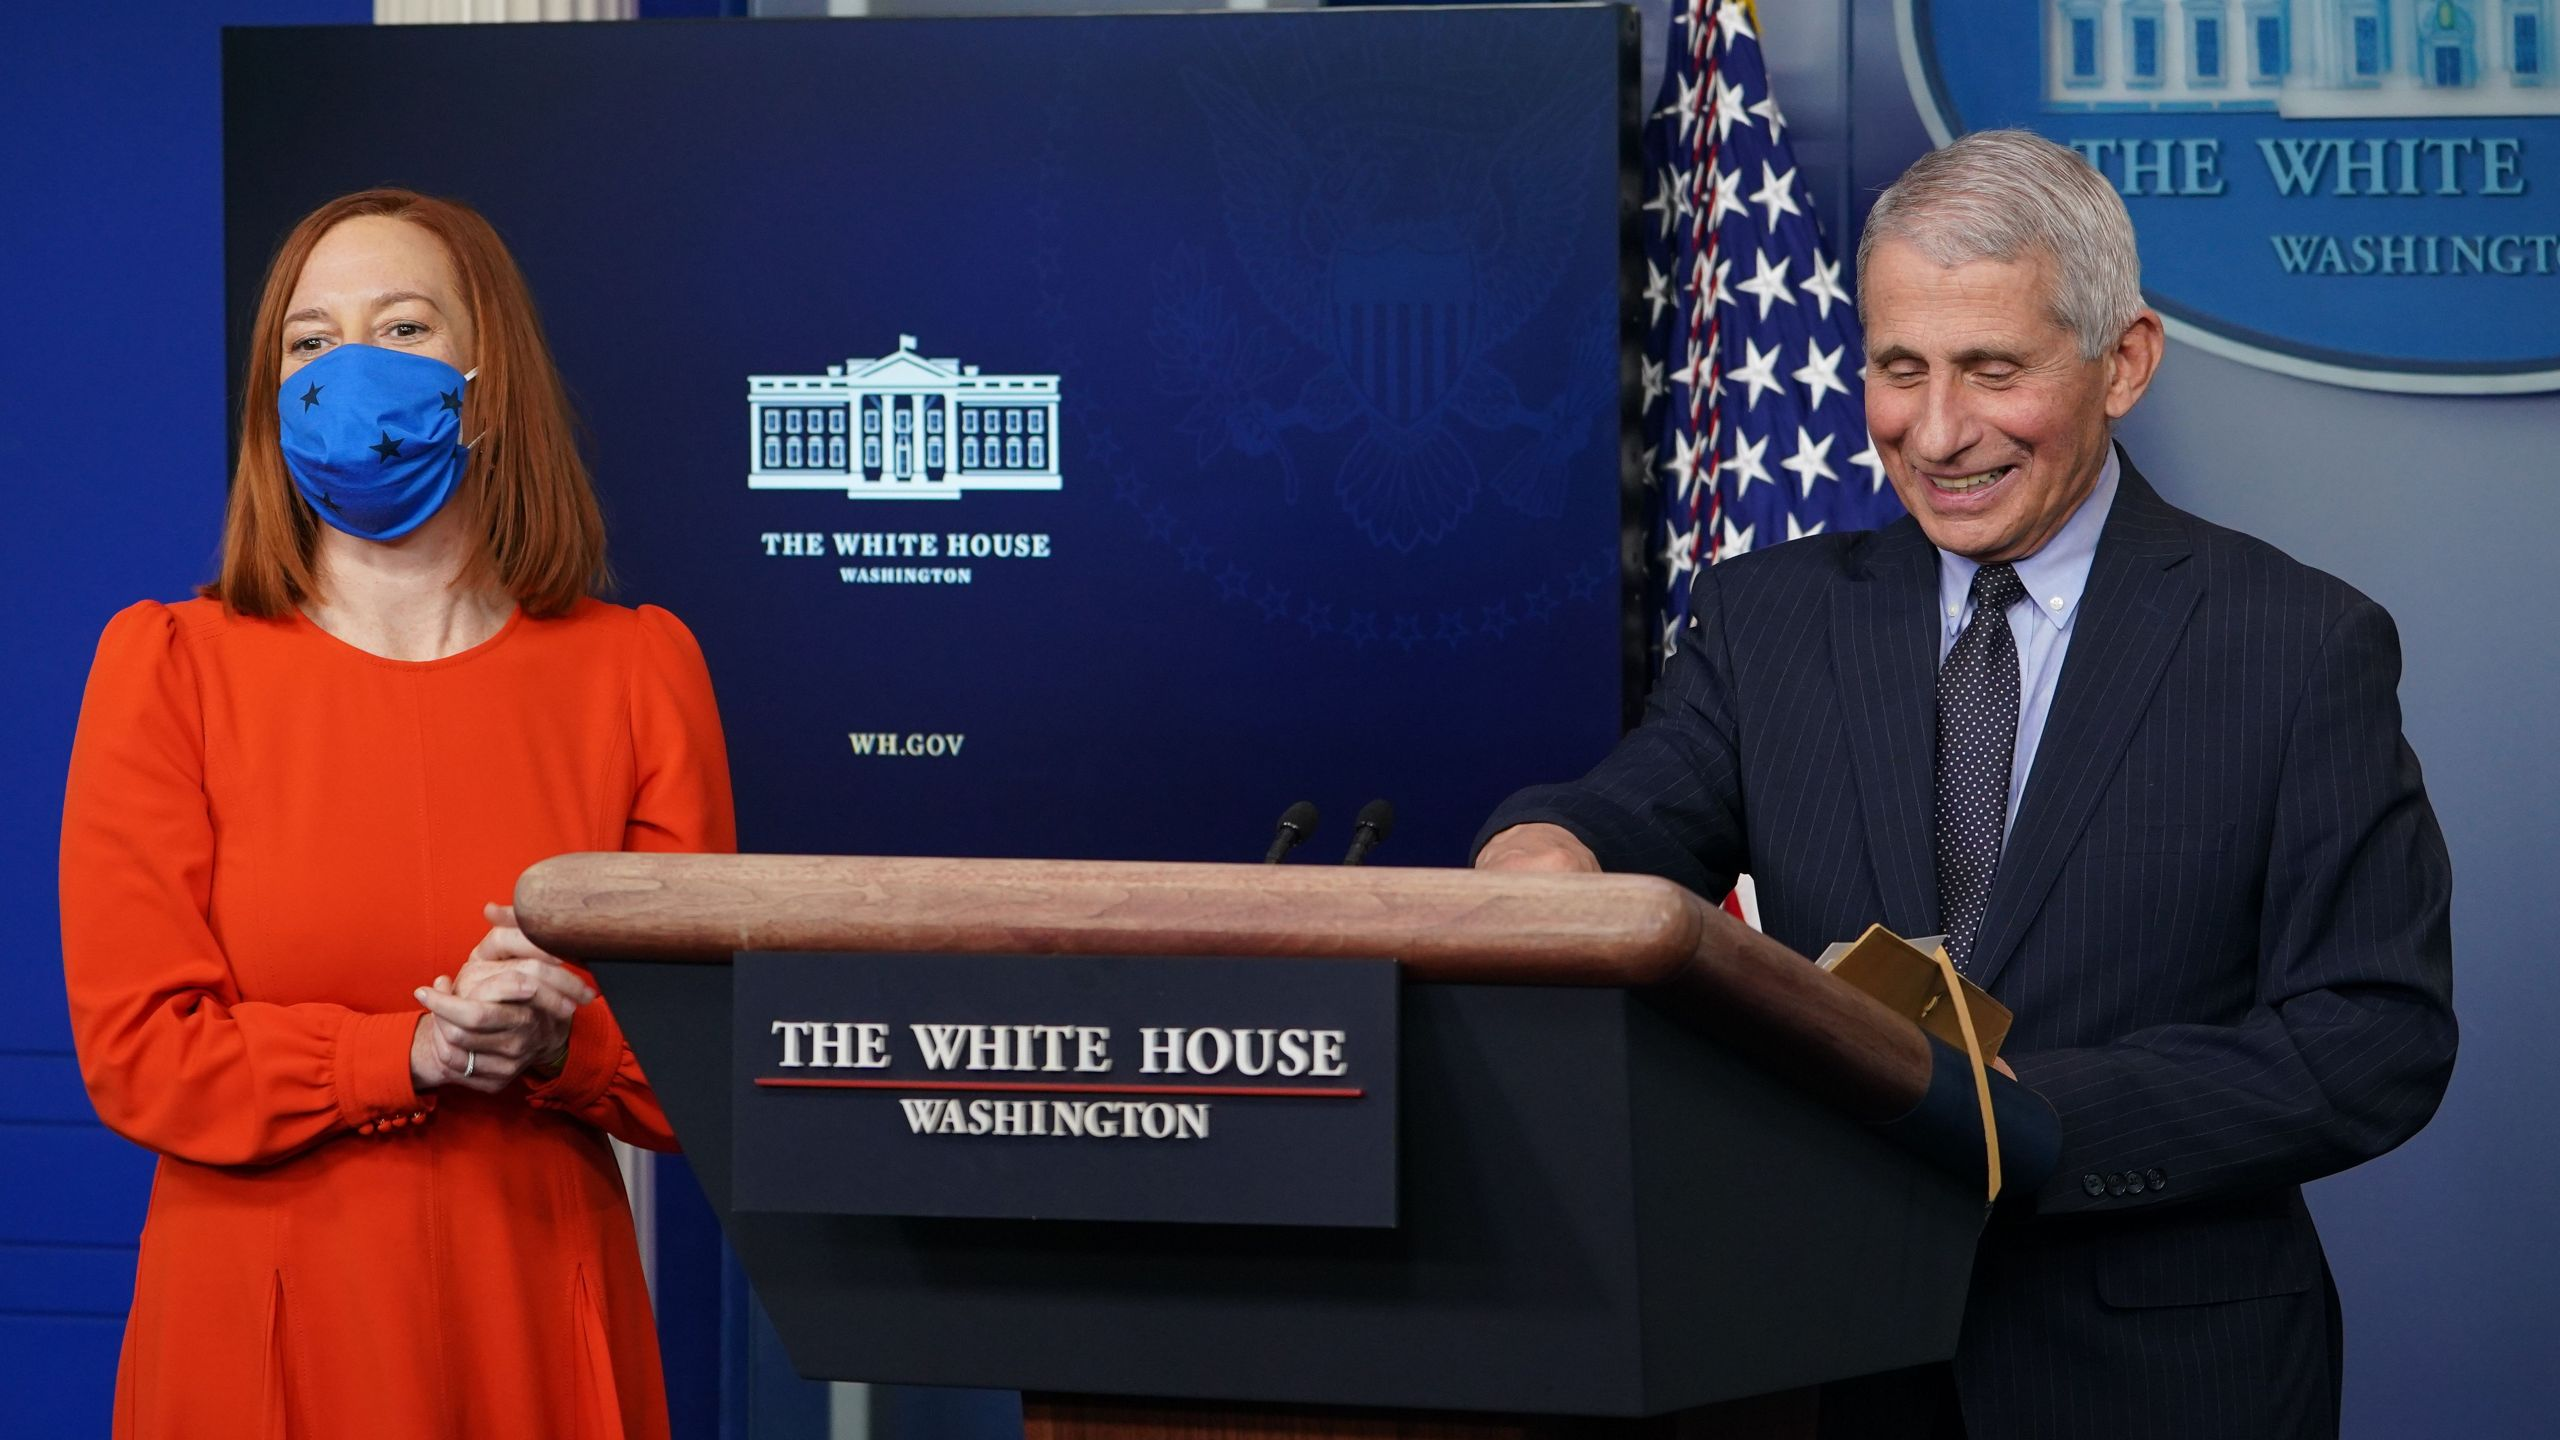 National Institute of Allergy and Infectious Diseases Anthony Fauci smiles as White House Press Secretary Jen Psaki (L) speaks to reporters during the daily briefing in the Brady Briefing Room of the White House in Washington, DC on January 21, 2021. (MANDEL NGAN/AFP via Getty Images)